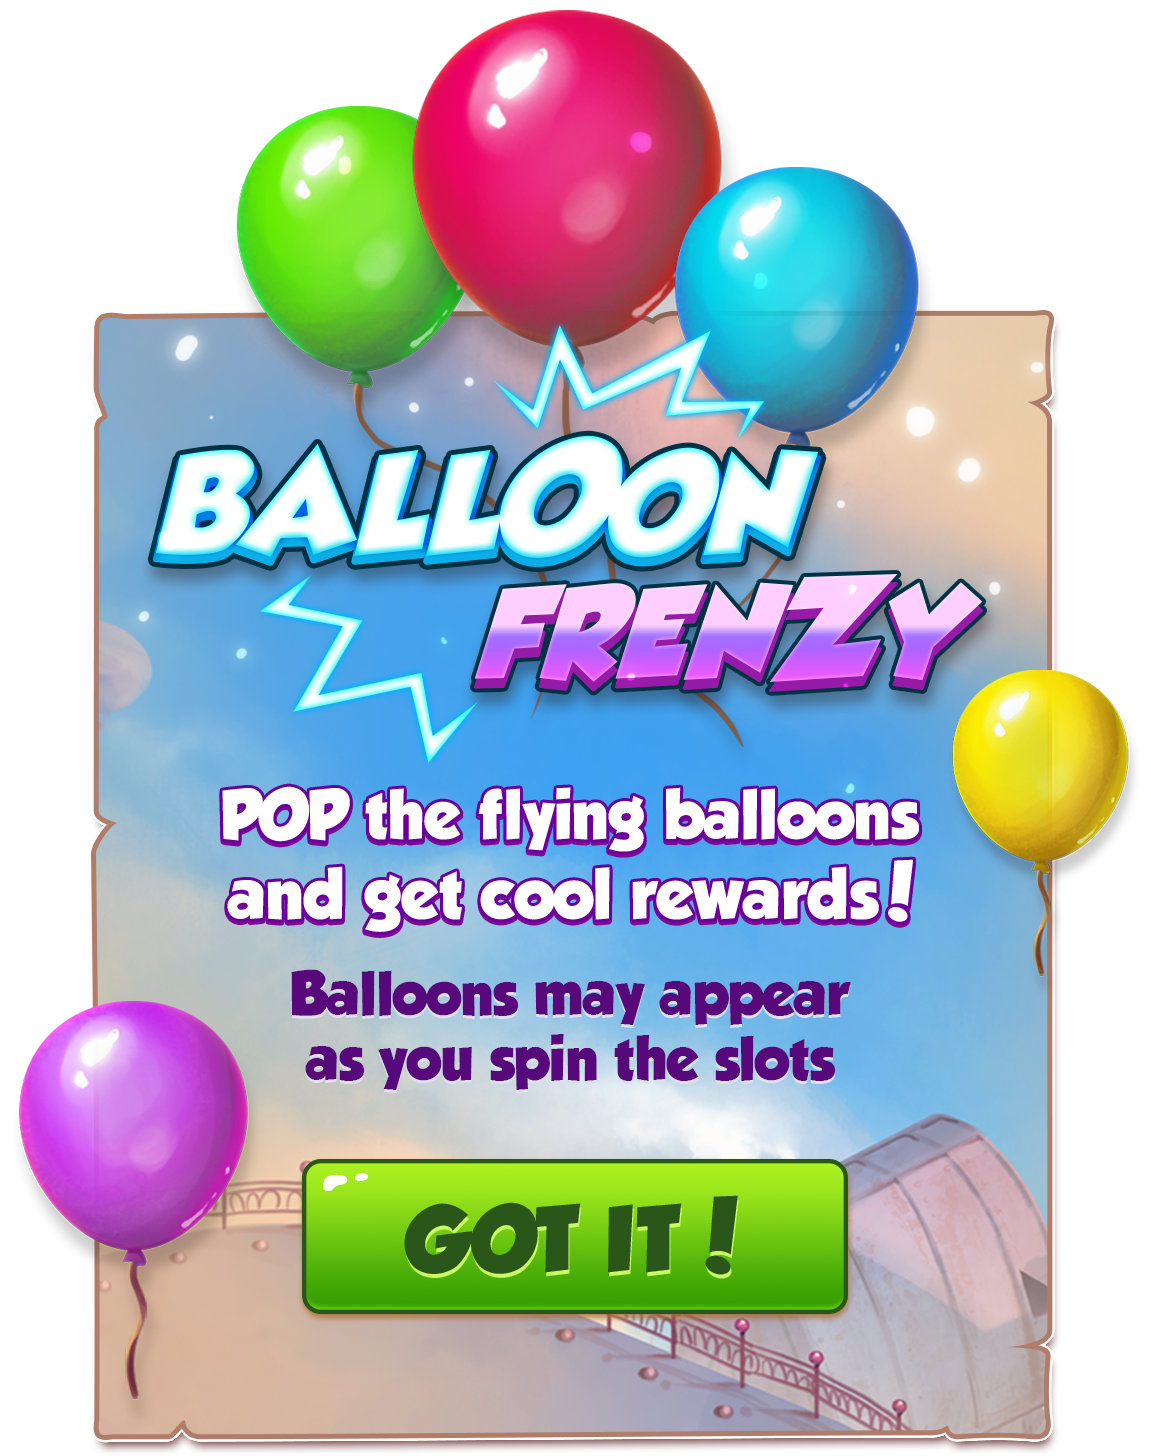 Balloon_Frenzy.png